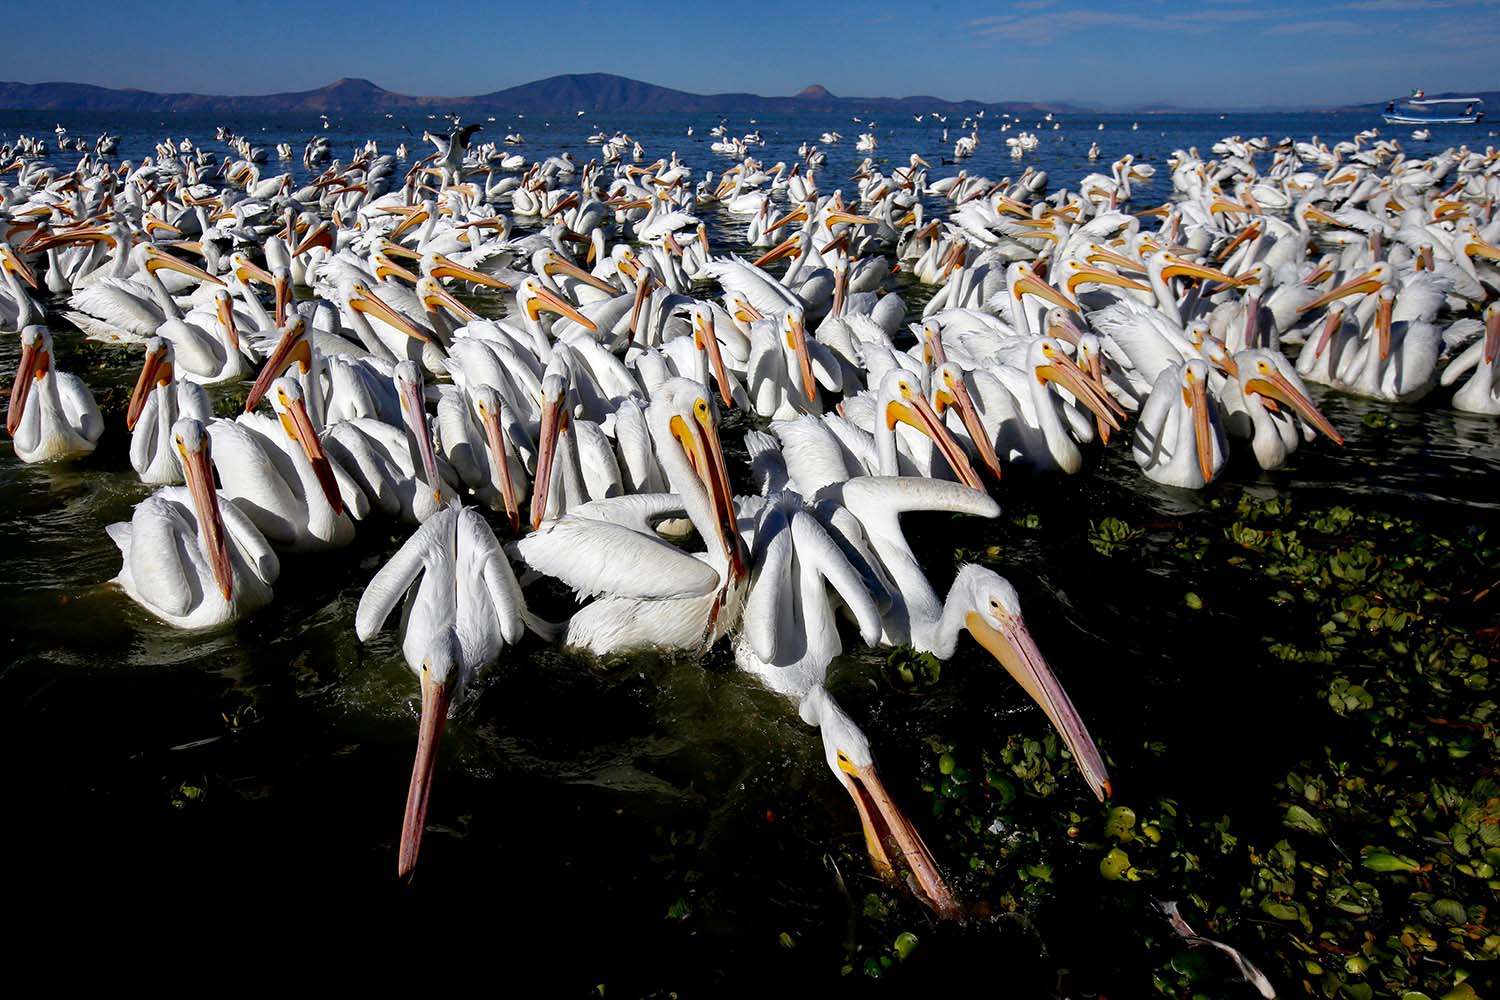 Migratory white pelicans from Canada and the United States gather on the shore of the Chapala lagoon in Cojumatlan, Mexico, on Jan. 28. ULISES RUIZ/AFP via Getty Images